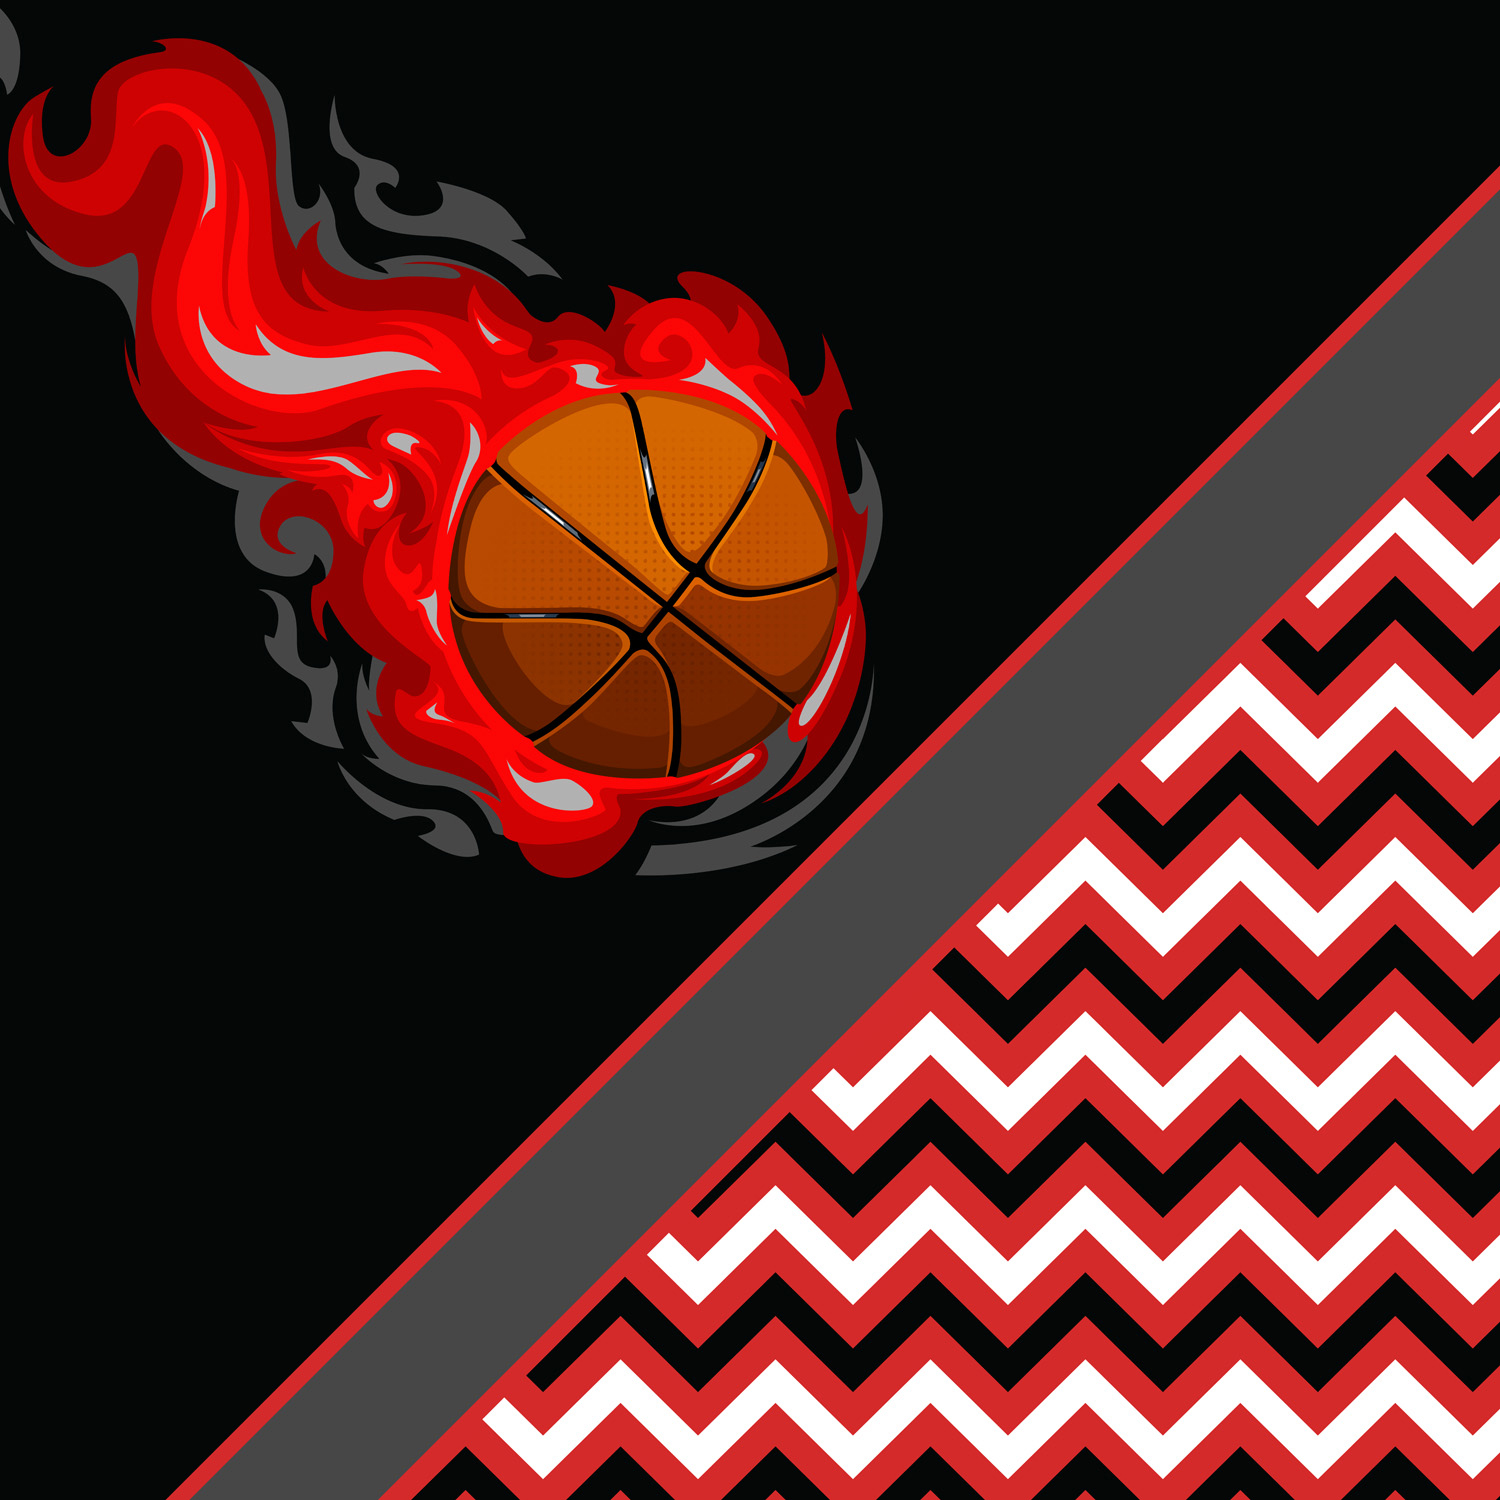 Chevron Black And Red Curtains For Basketball Themed Girls